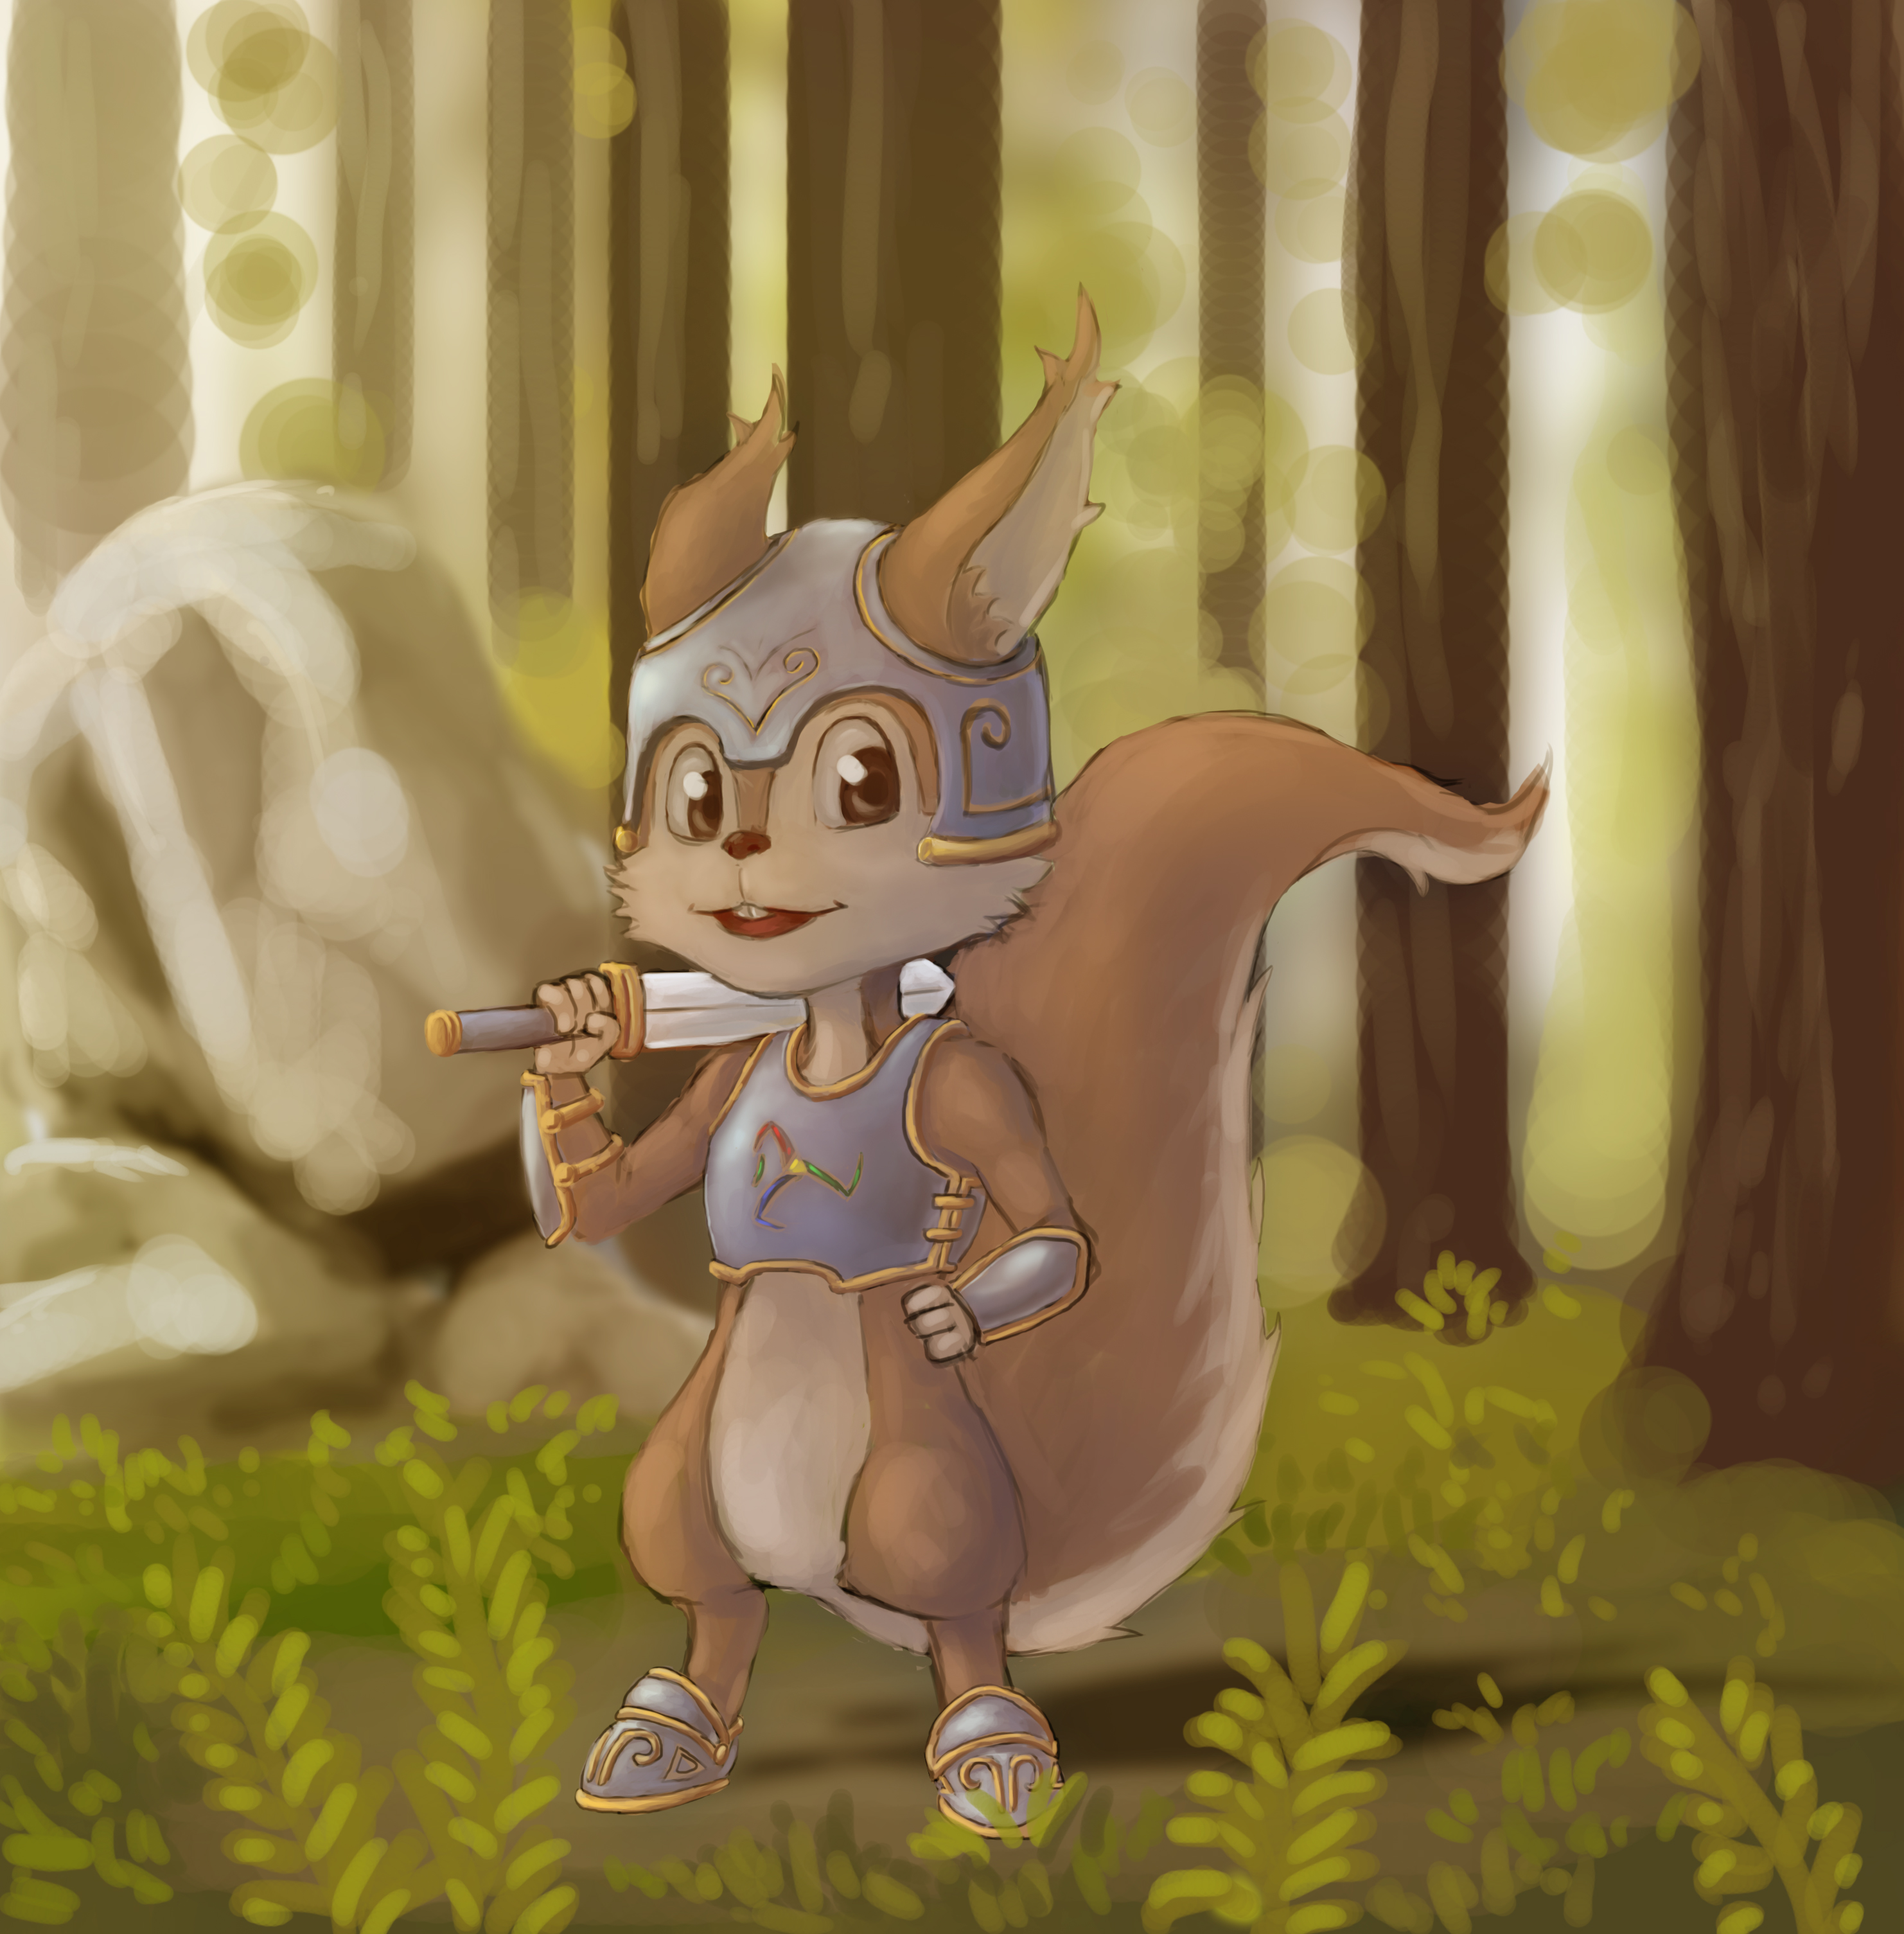 DreyLand - Funy, The squirrel